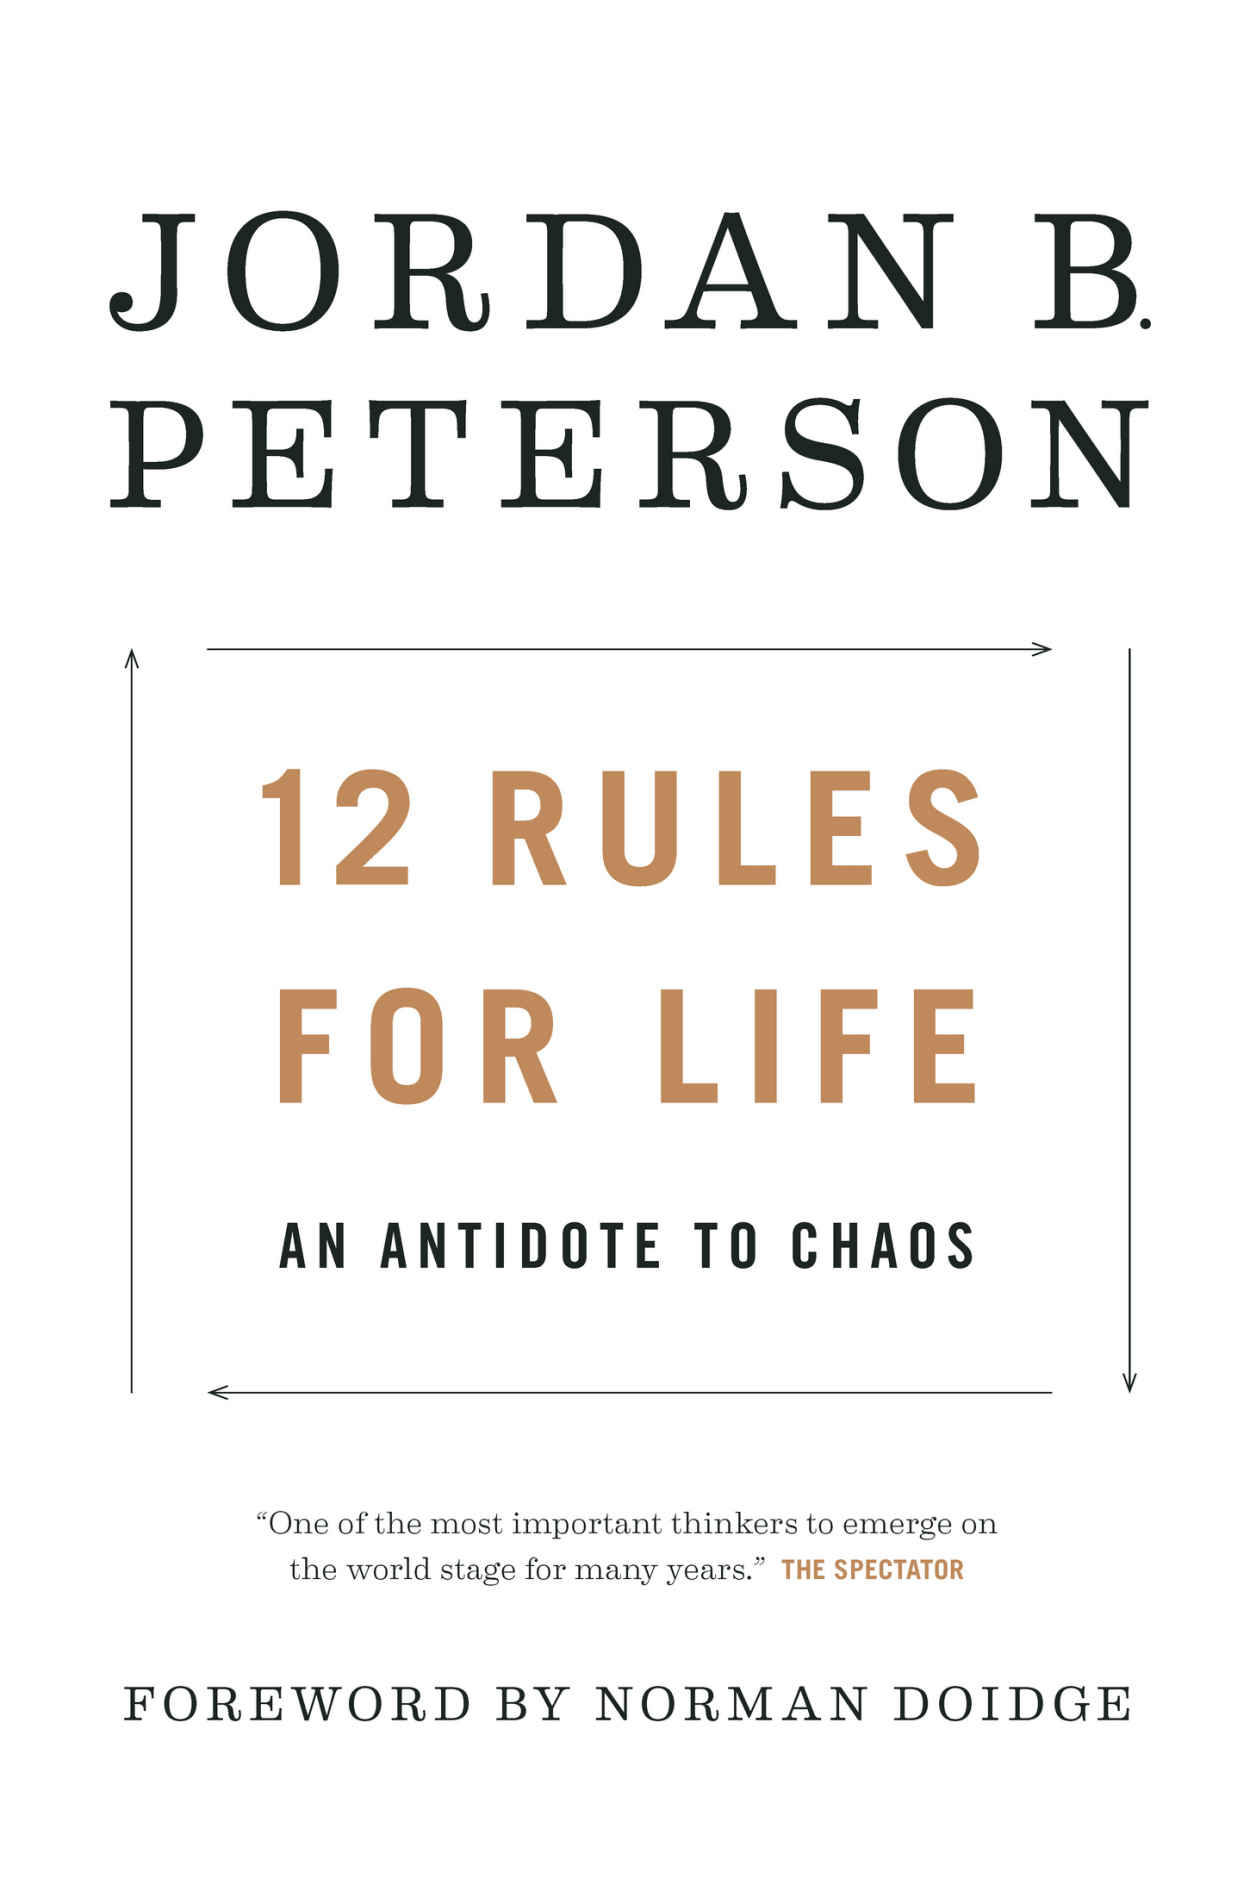 12 Rules for Life: An Antidote to Chaos - Jordan Peterson [kindle] [mobi]